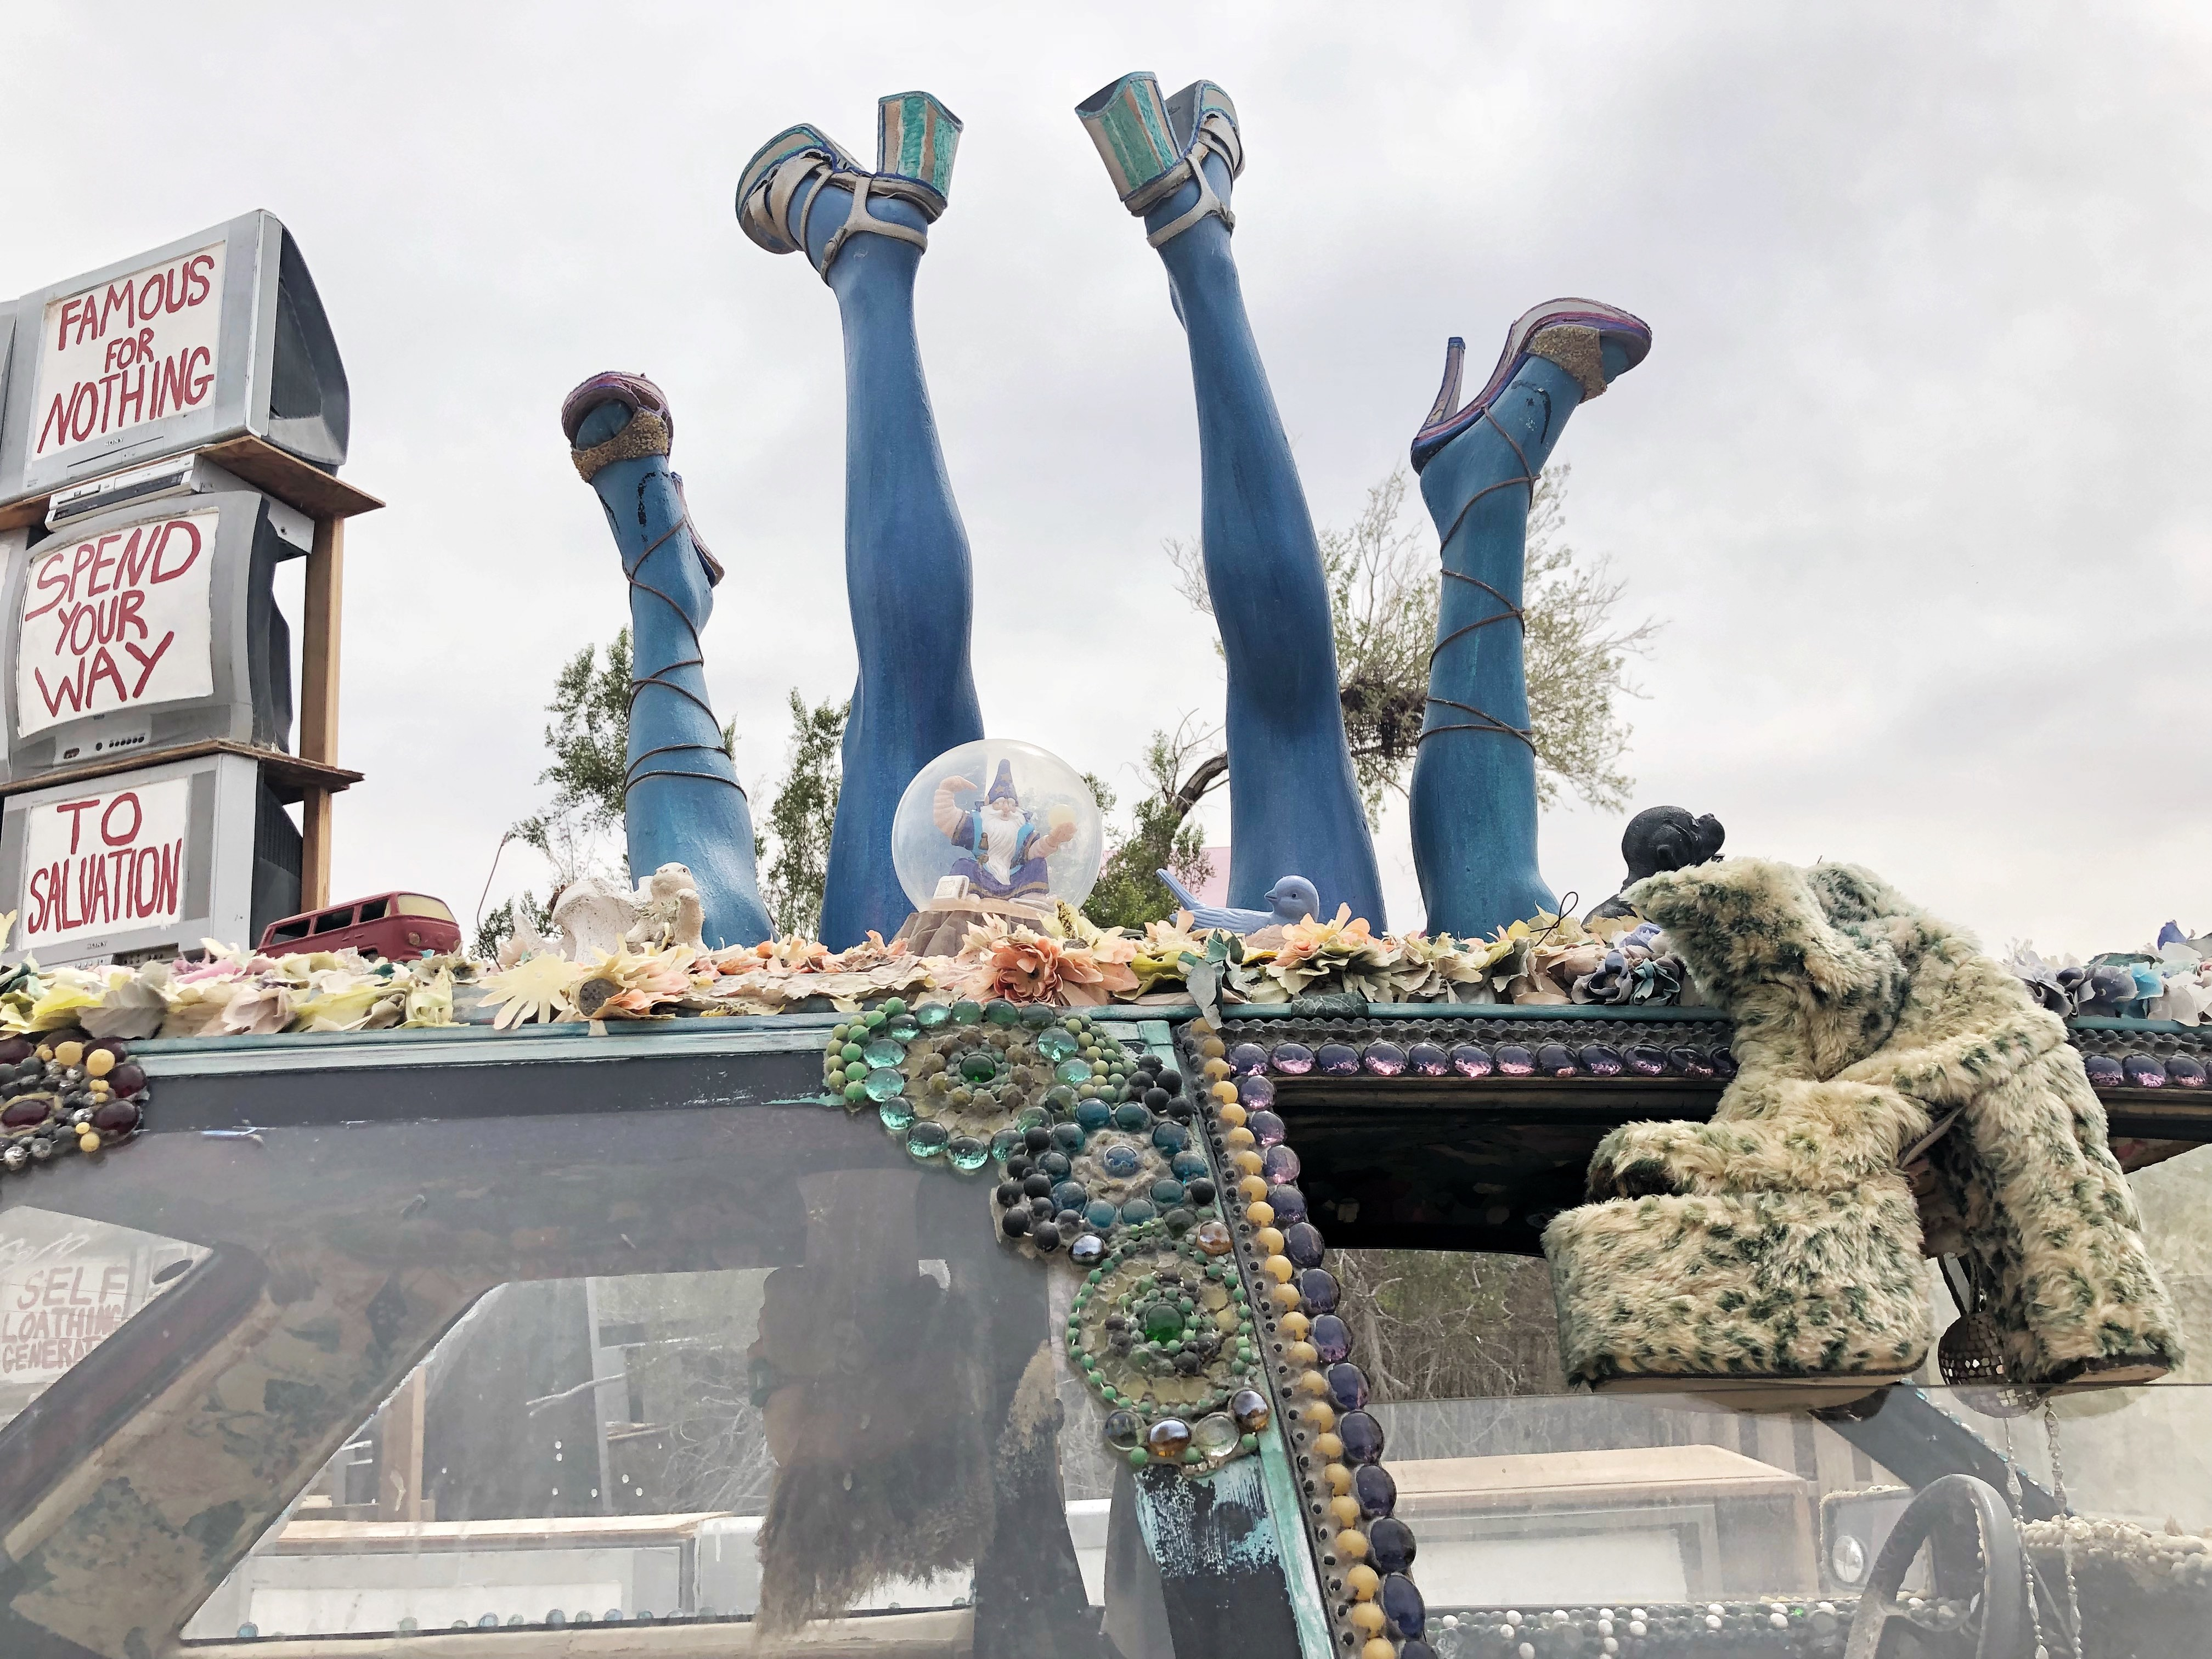 Wacky decked-out car in East Jesus in Slab City, Calif., on April 30, 2018. ECF